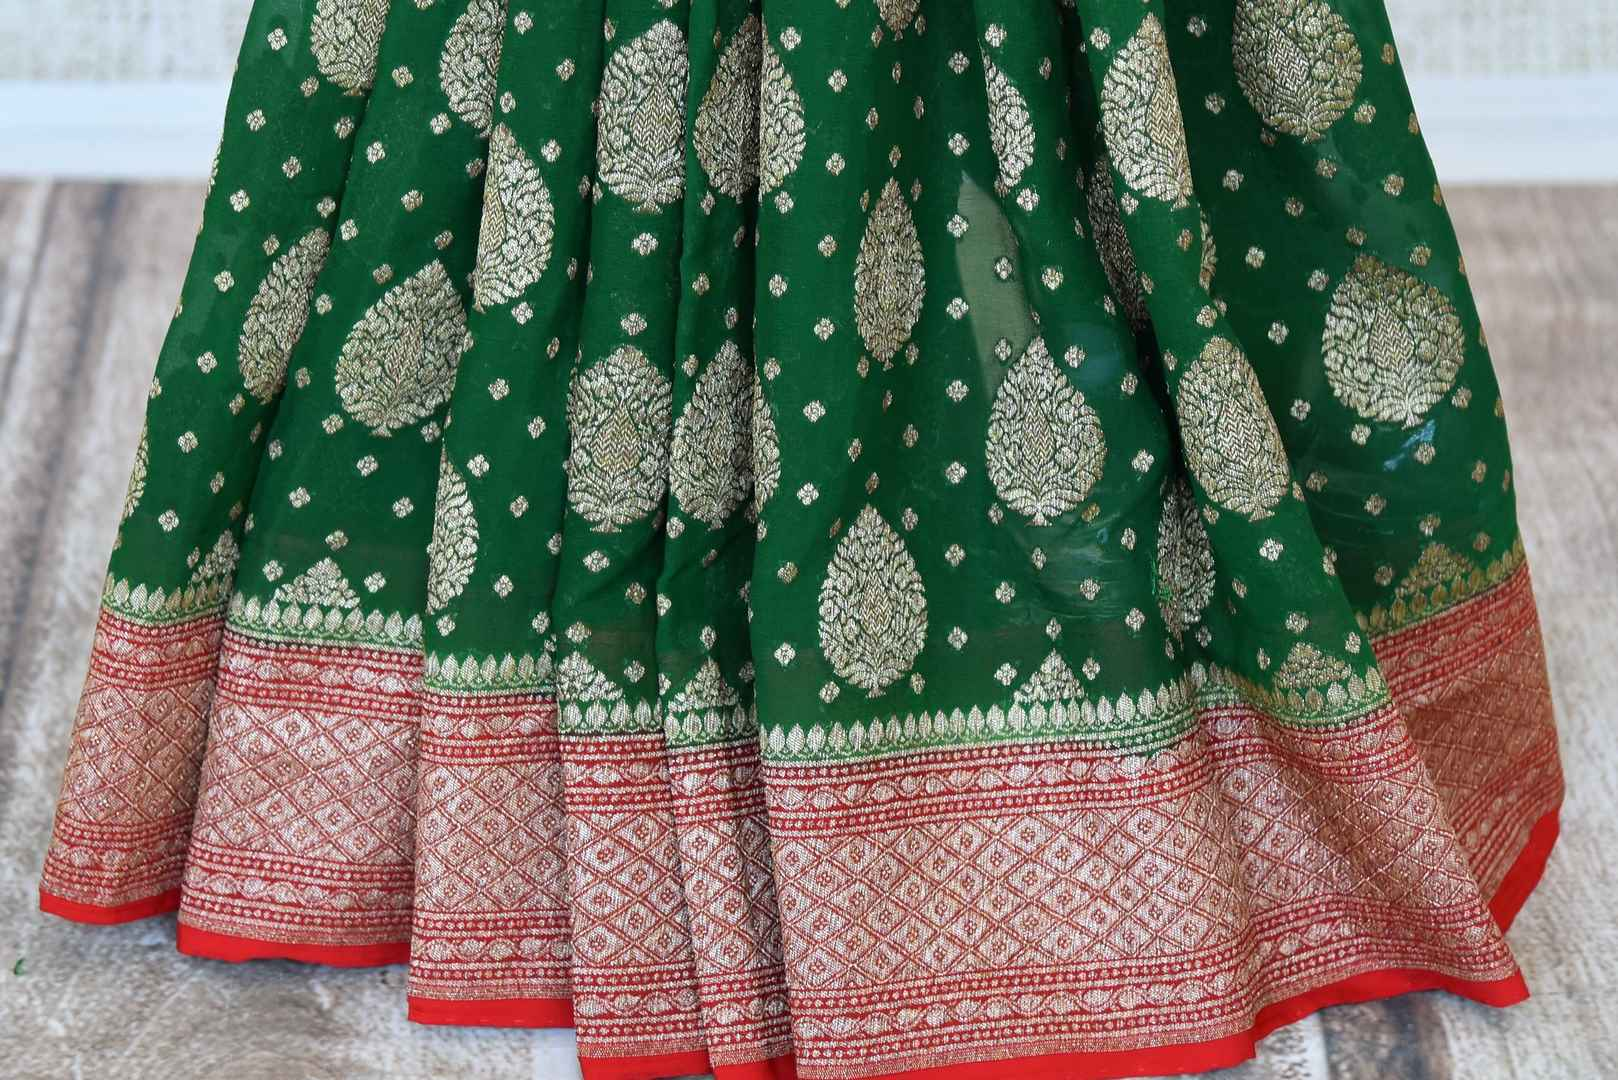 Shop green georgette Banarasi sari online in USA with red zari border. Feel traditional on special occasions in beautiful Indian designer saris from Pure Elegance Indian fashion store in USA. Choose from a splendid variety of Banarasi sarees, pure handwoven saris. Buy online.-pleats